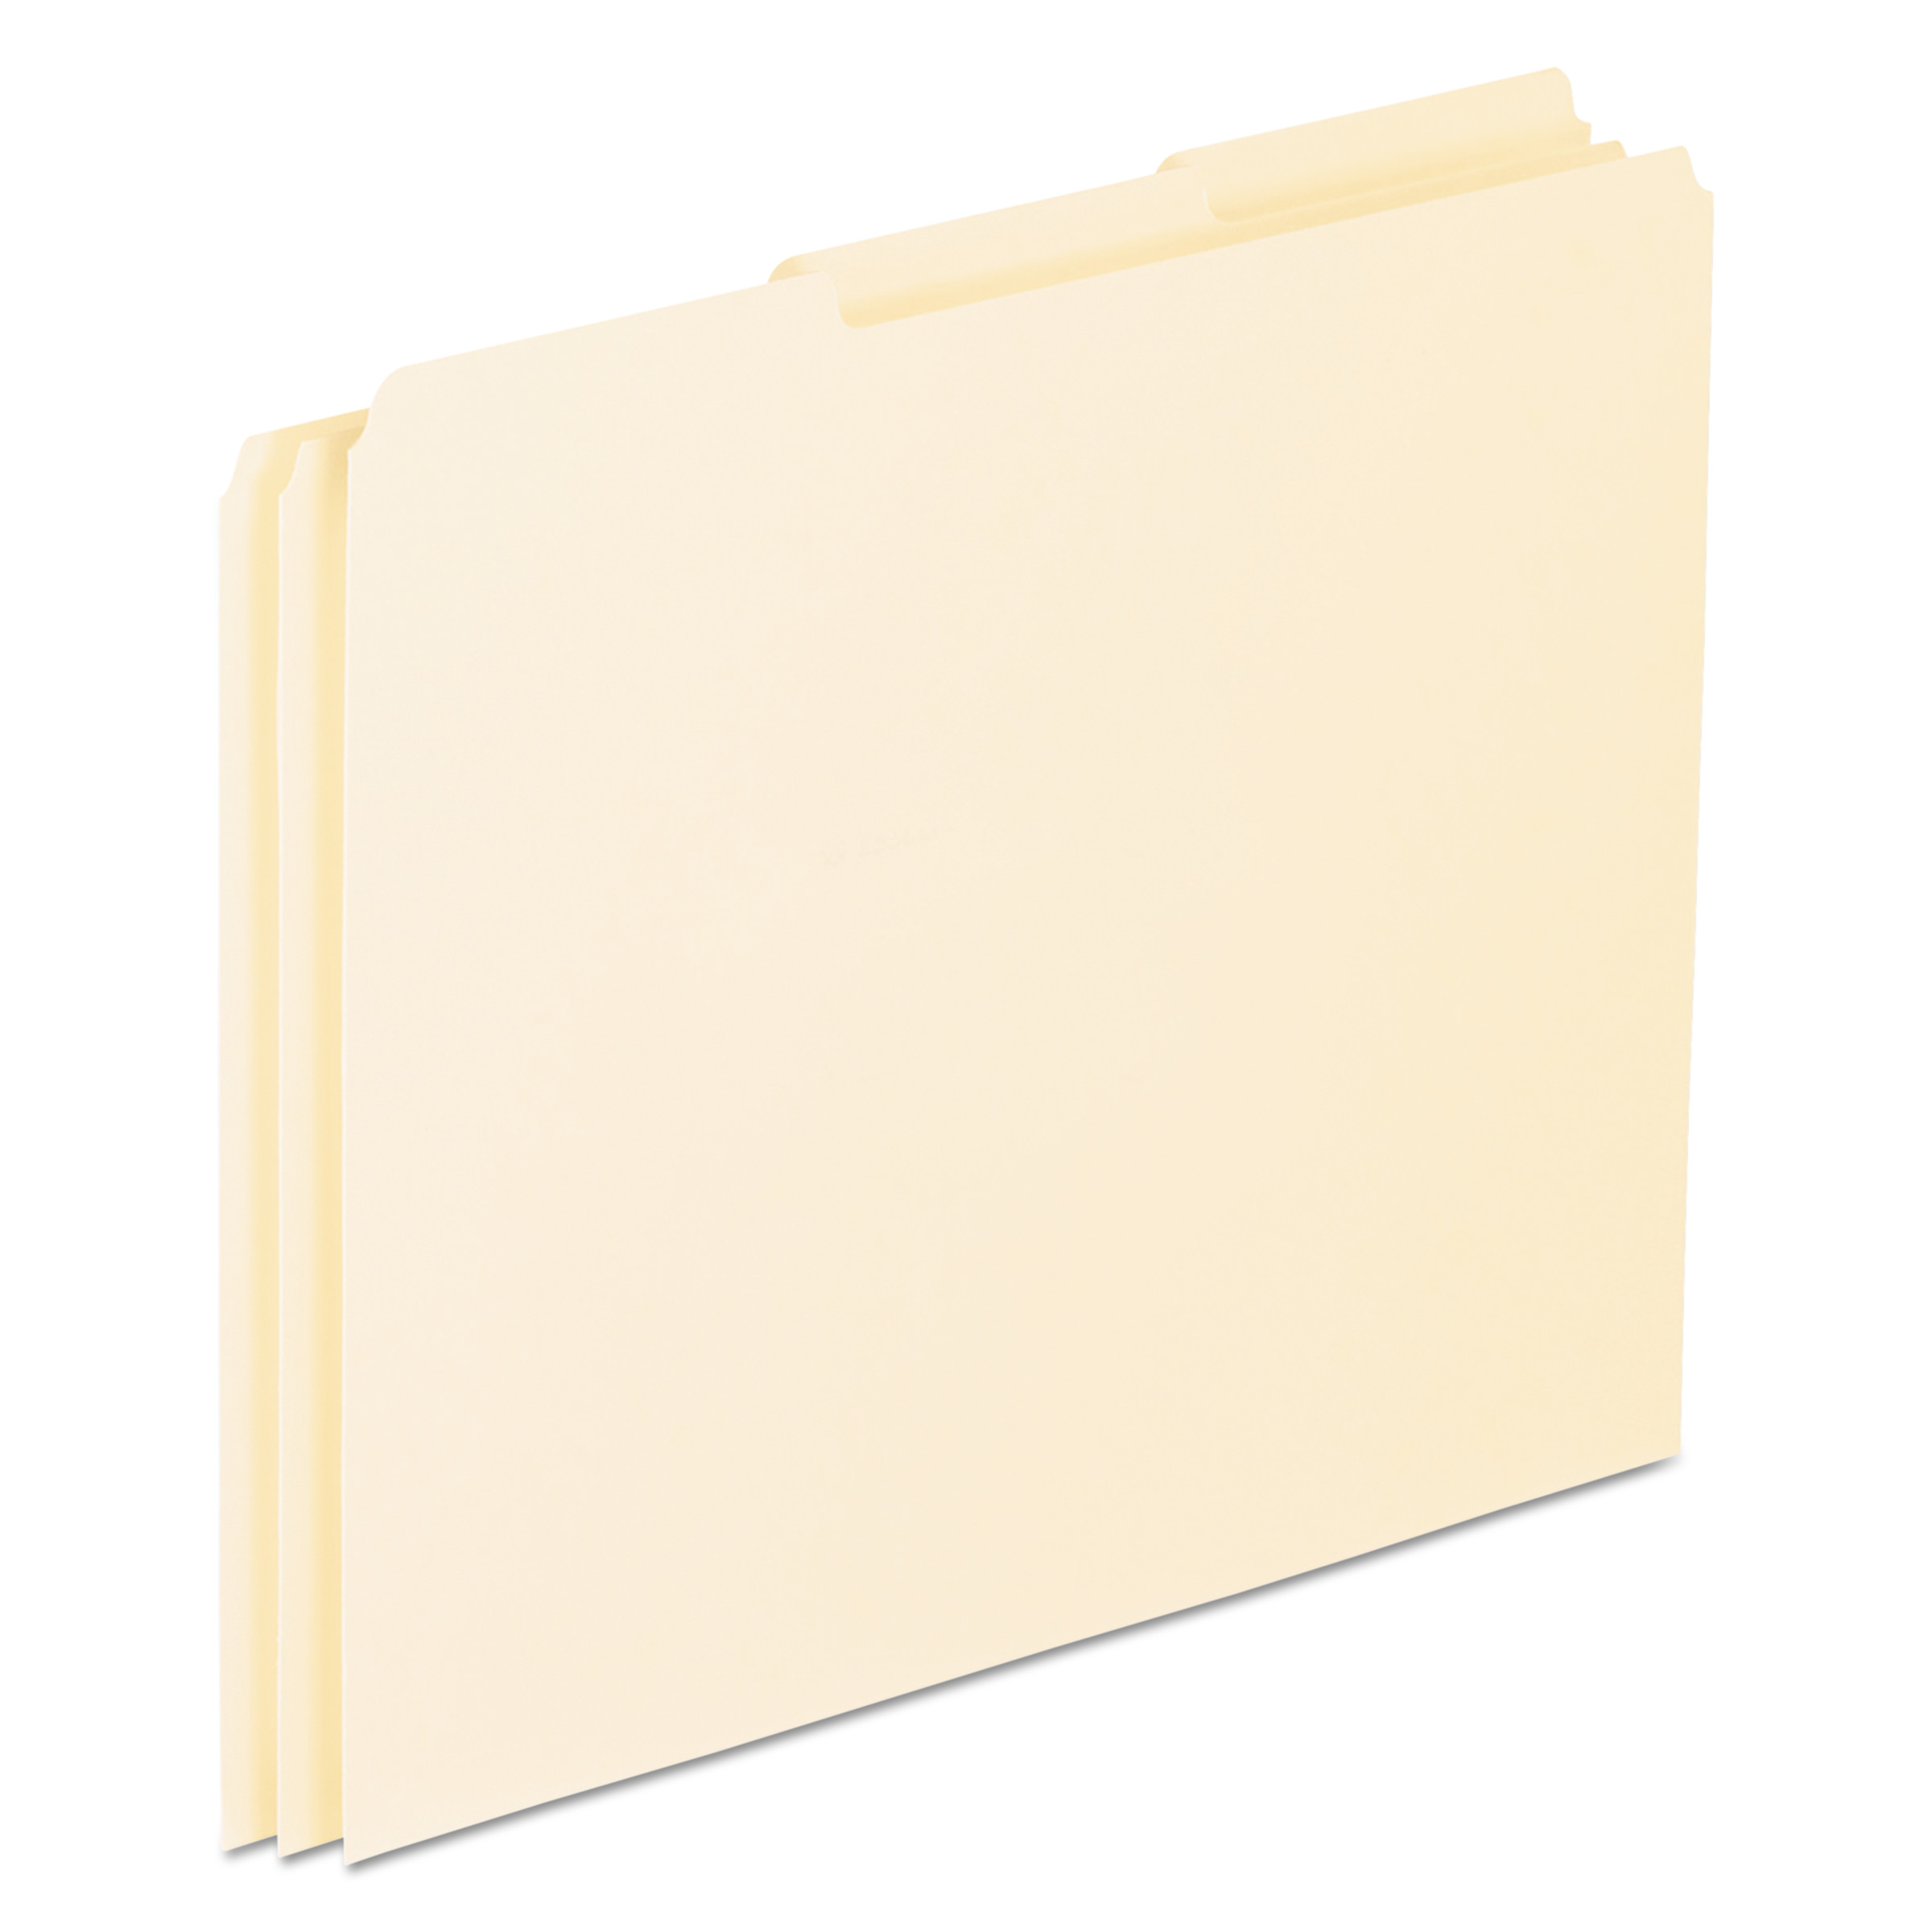 Pendaflex Blank Tab Manila File Guides by TOPS BUSINESS FORMS